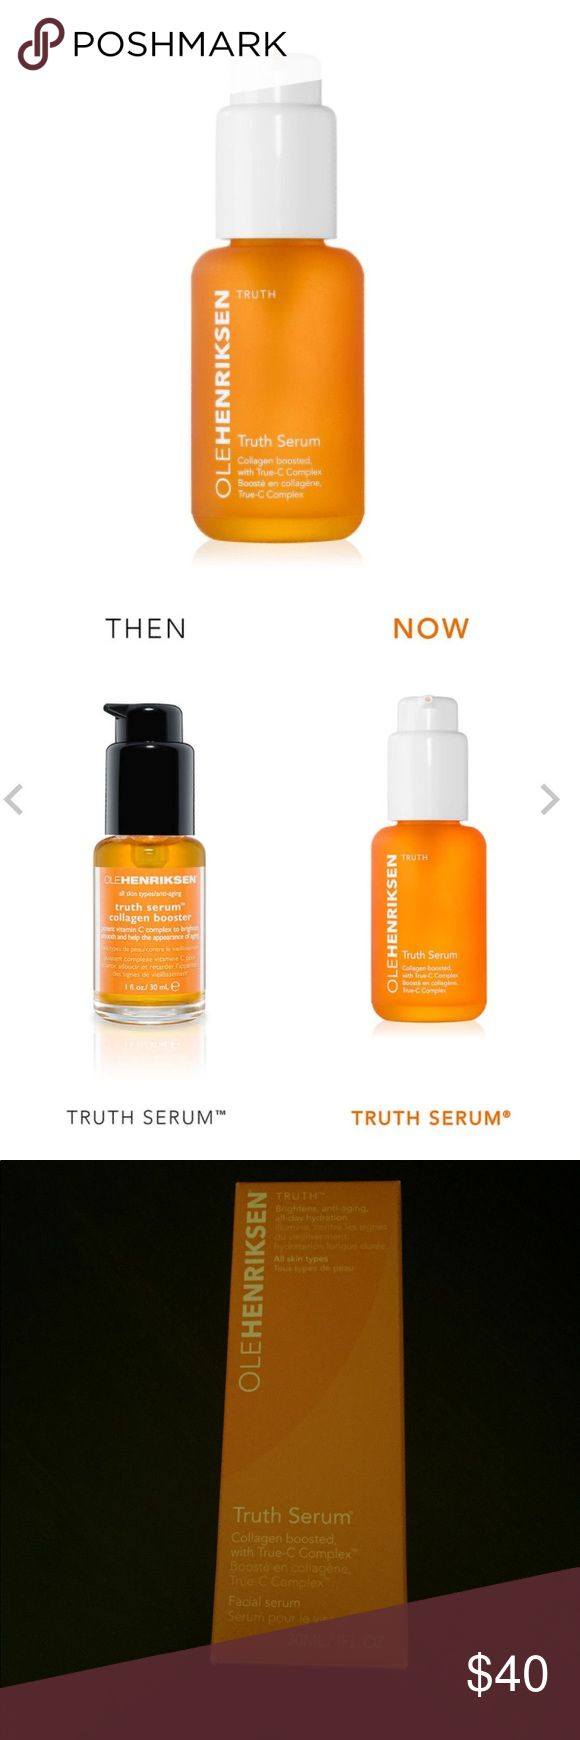 OLE HENRIKSEN TRUTH SERUM BRAND NEW OLE HENRIKSEN TRUTH SERUM Brightens, firms, fights visible signs of aging and delivers all-day hydration  Truth Serum is like a daily multivitamin for the skin & Ole Henriksen's #1 age-defying serum. Ole was an early adopter of vitamin C in skincare, believing that its antioxidant properties & role in promoting collagen make it a crucial ingredient. Supercharged with True-C Complex™ & collagen. potent age-defying serum helps brighten & firm the skin as it…